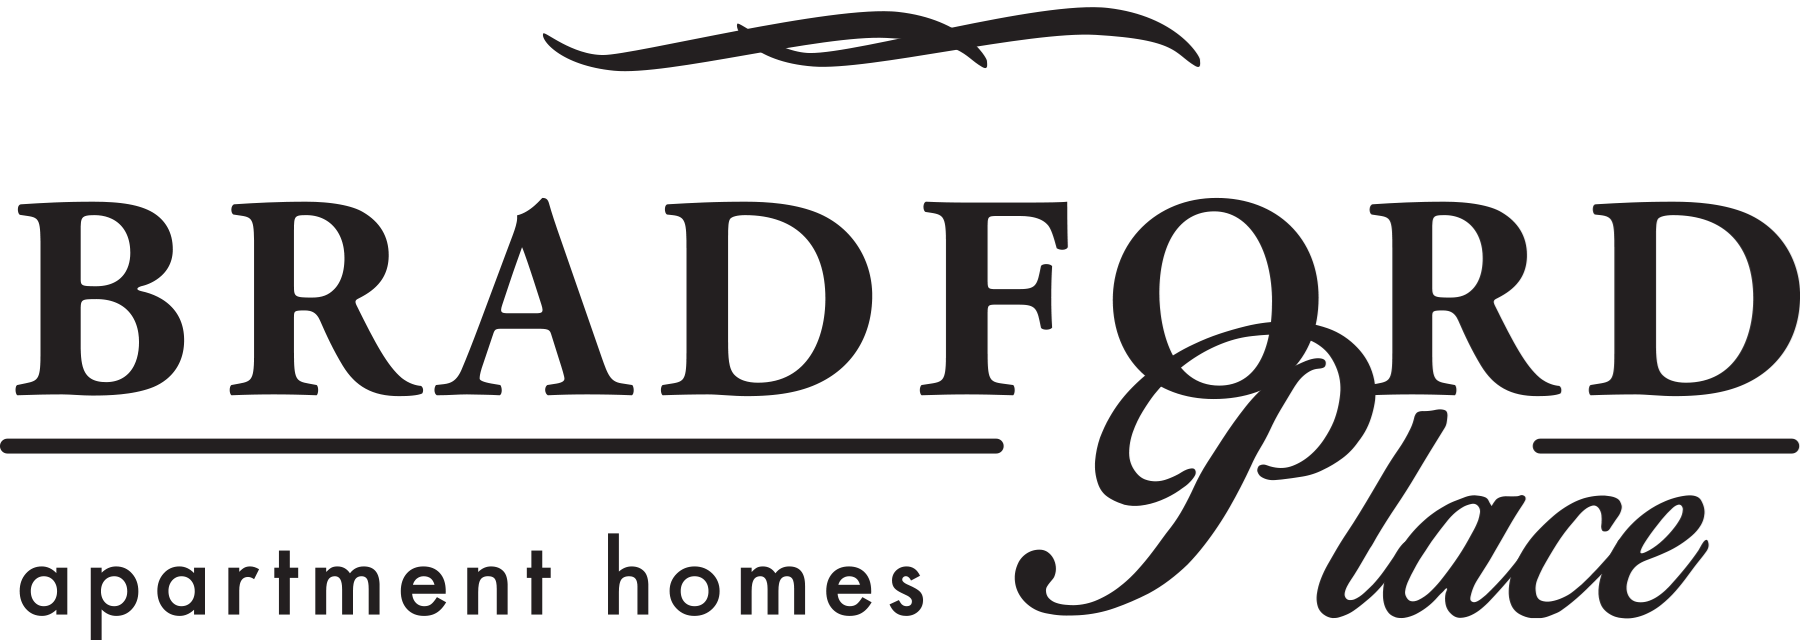 Bradford Place Apartments Property Logo 29